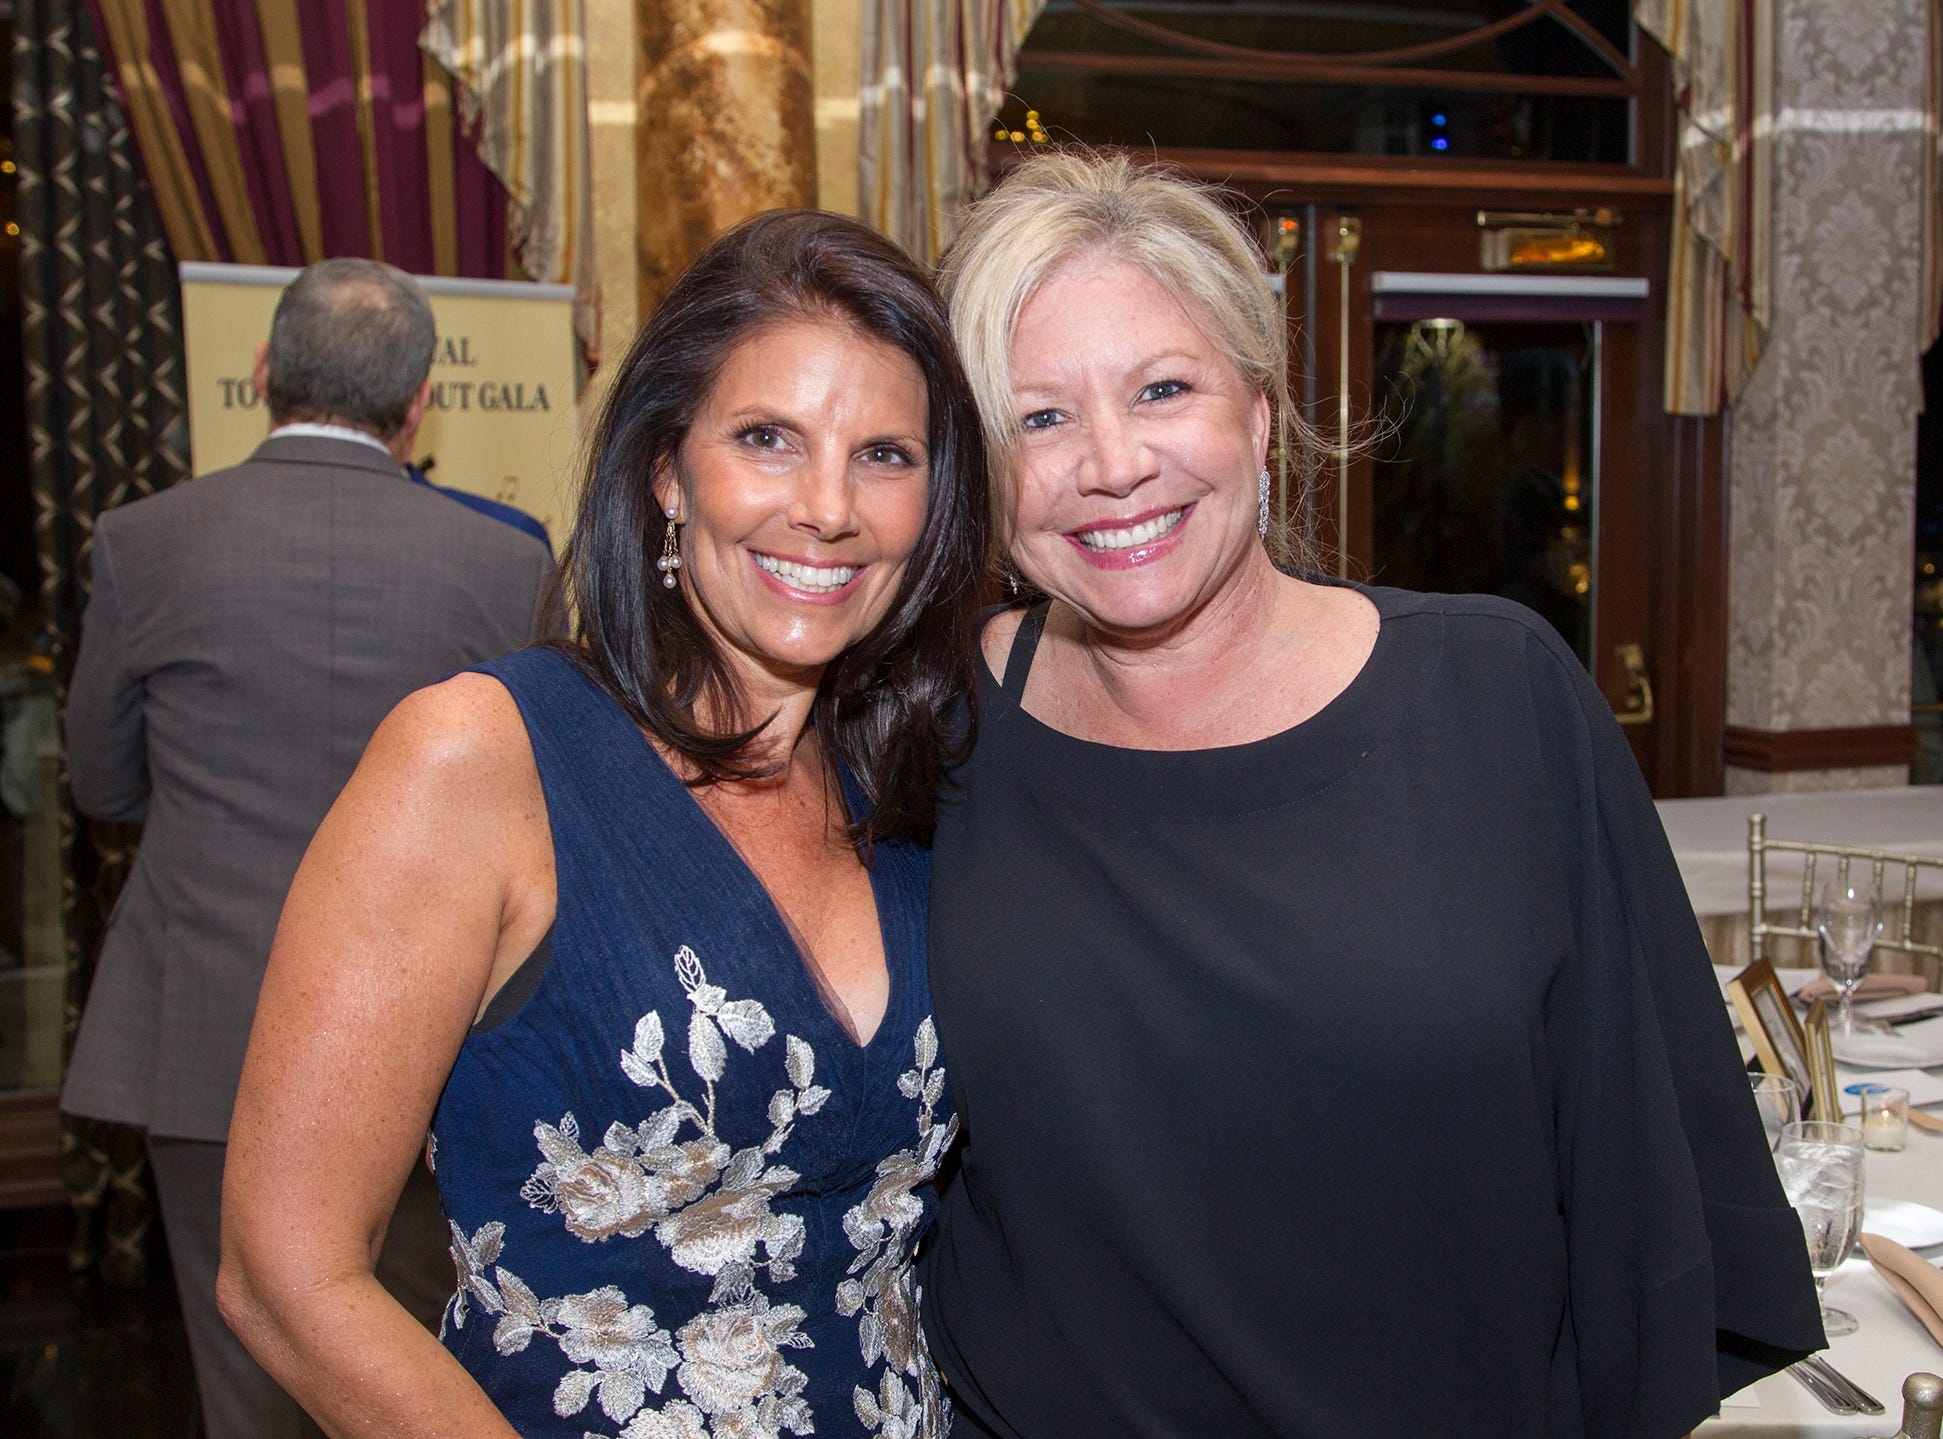 Christine Ferrari, Lois Resnick. Upper Saddle River Education Foundation hosted its Town Night Out Gala at Seasons in Washington Twp. 04/06/2019